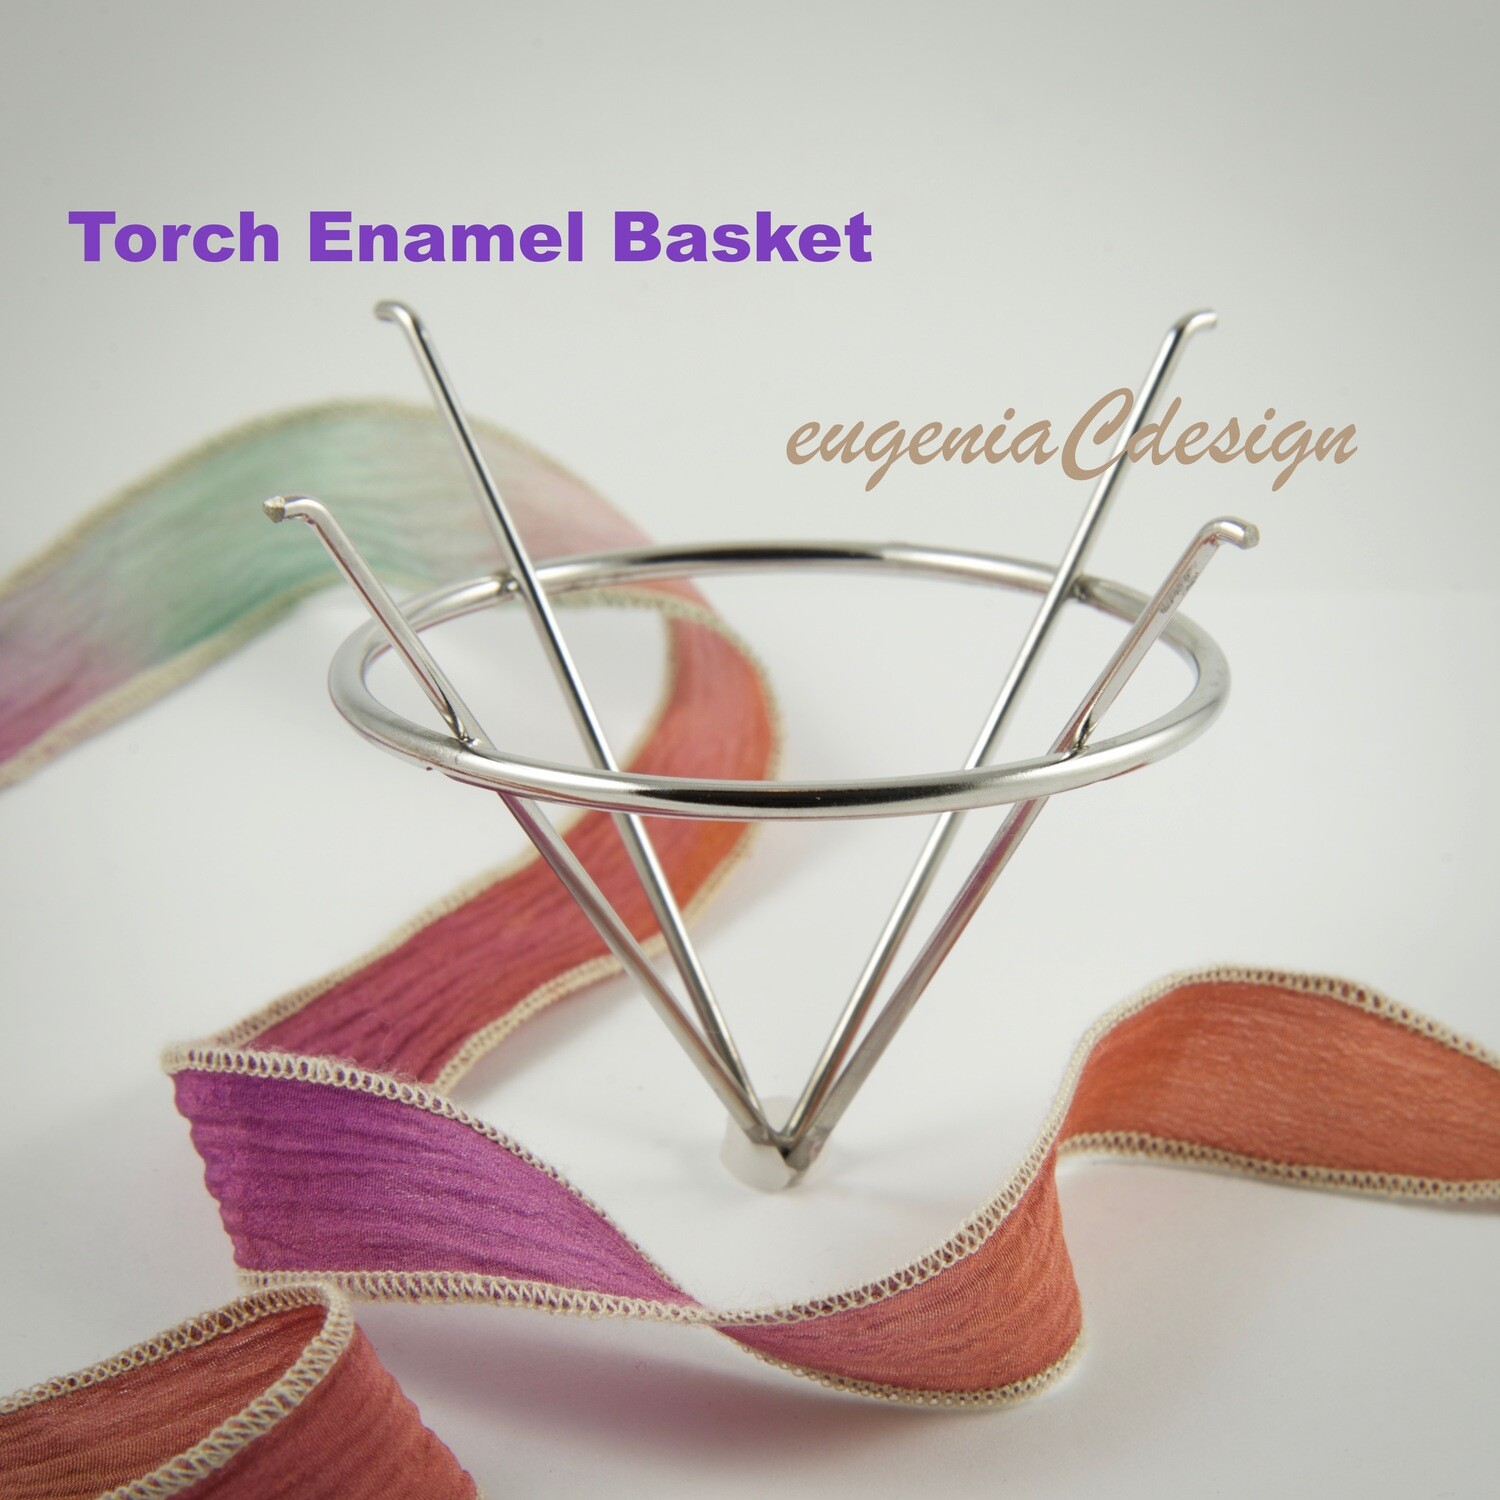 Torch Fire Enamel, Torch Fire Basket, Torch Fire Enamel Basket, Stainless Steel, Torch Enamel Basket